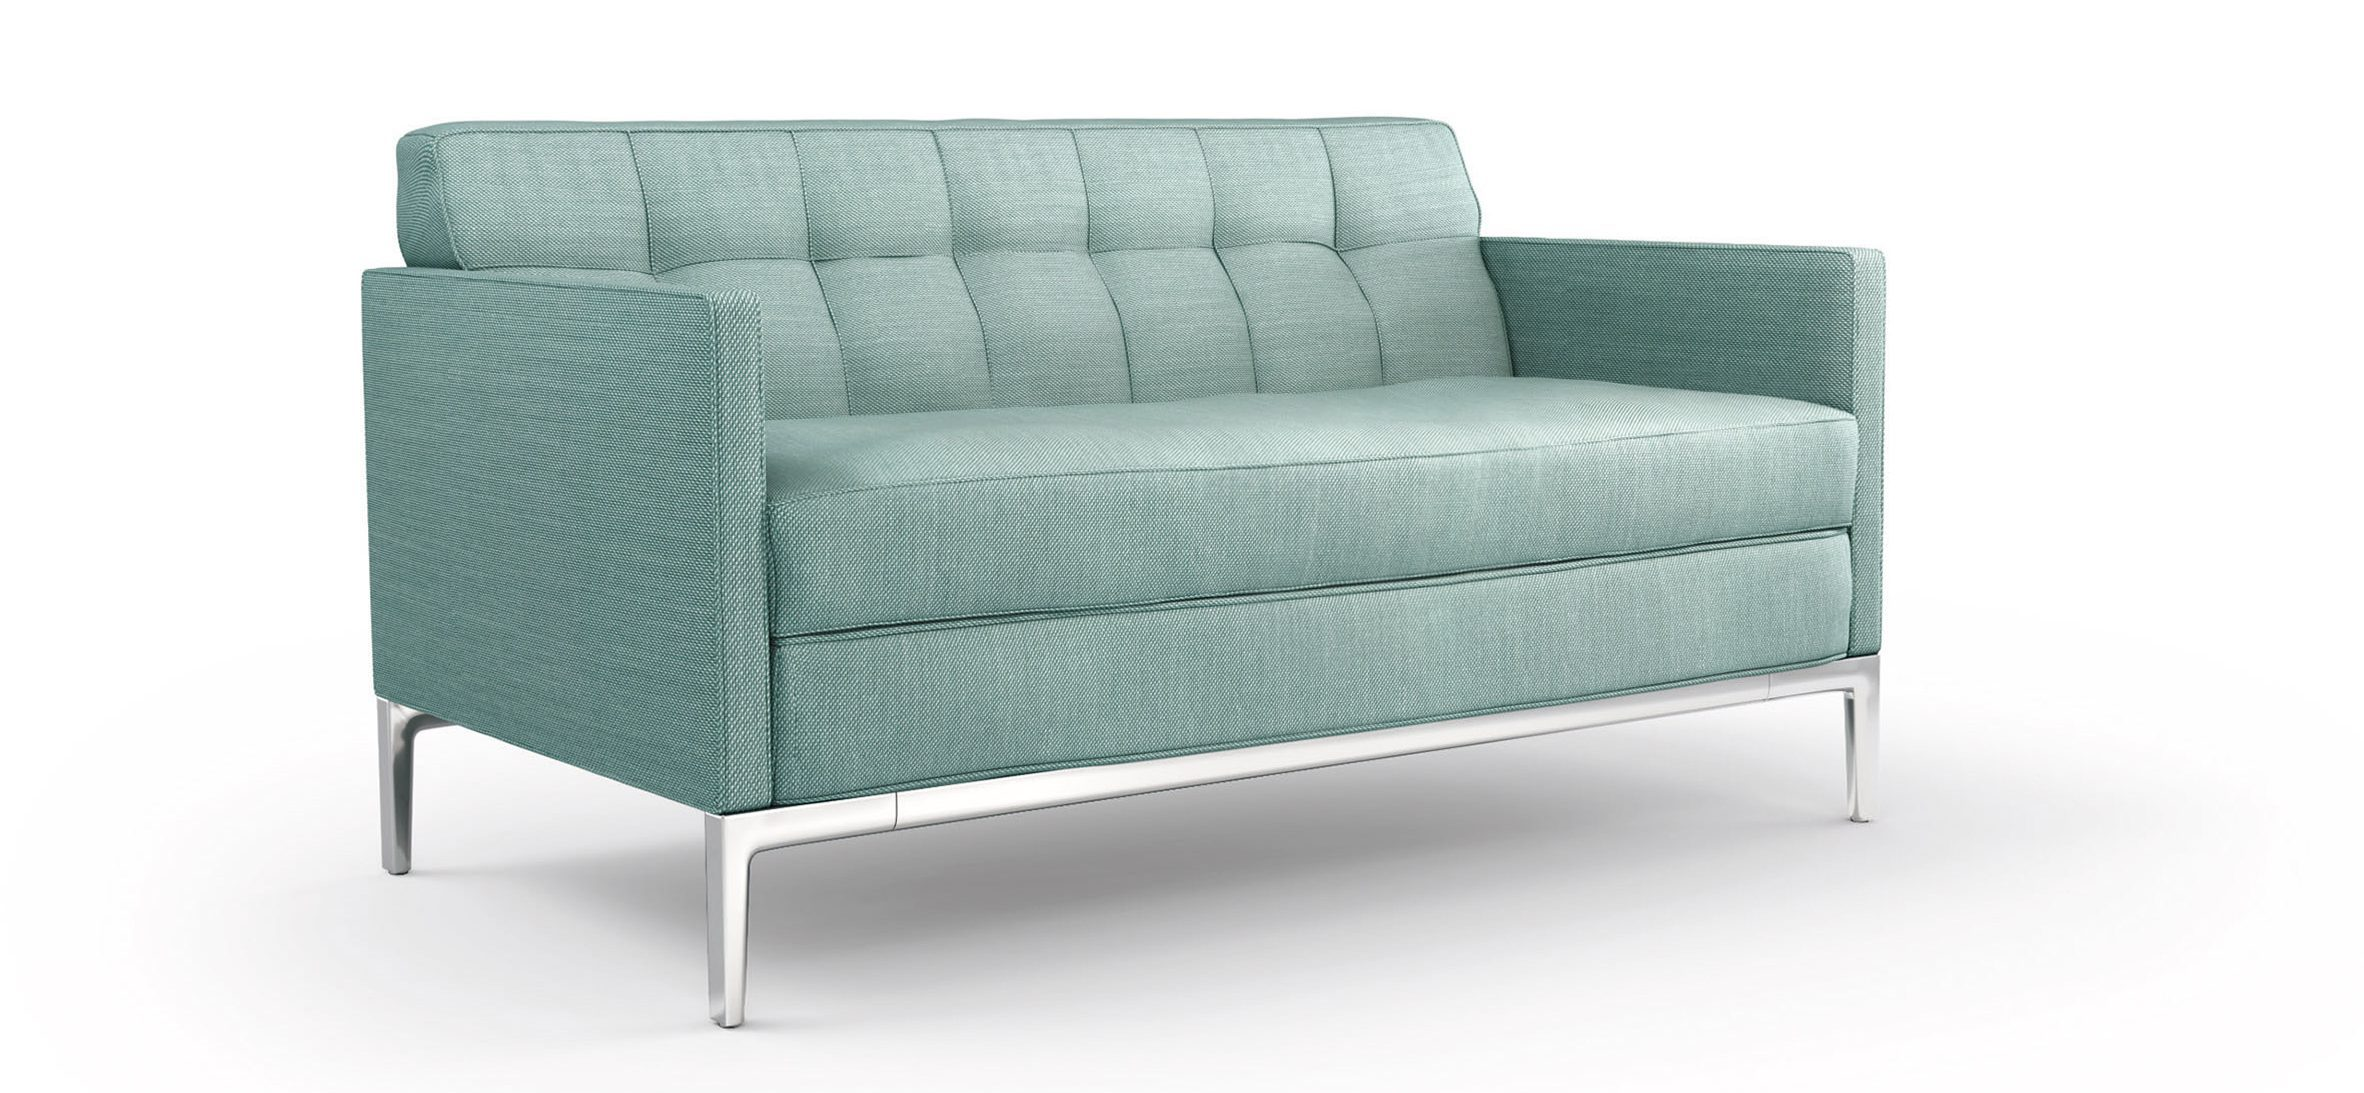 Seafoam blue sofa with chrome frame by Philippe Starck for Cassina